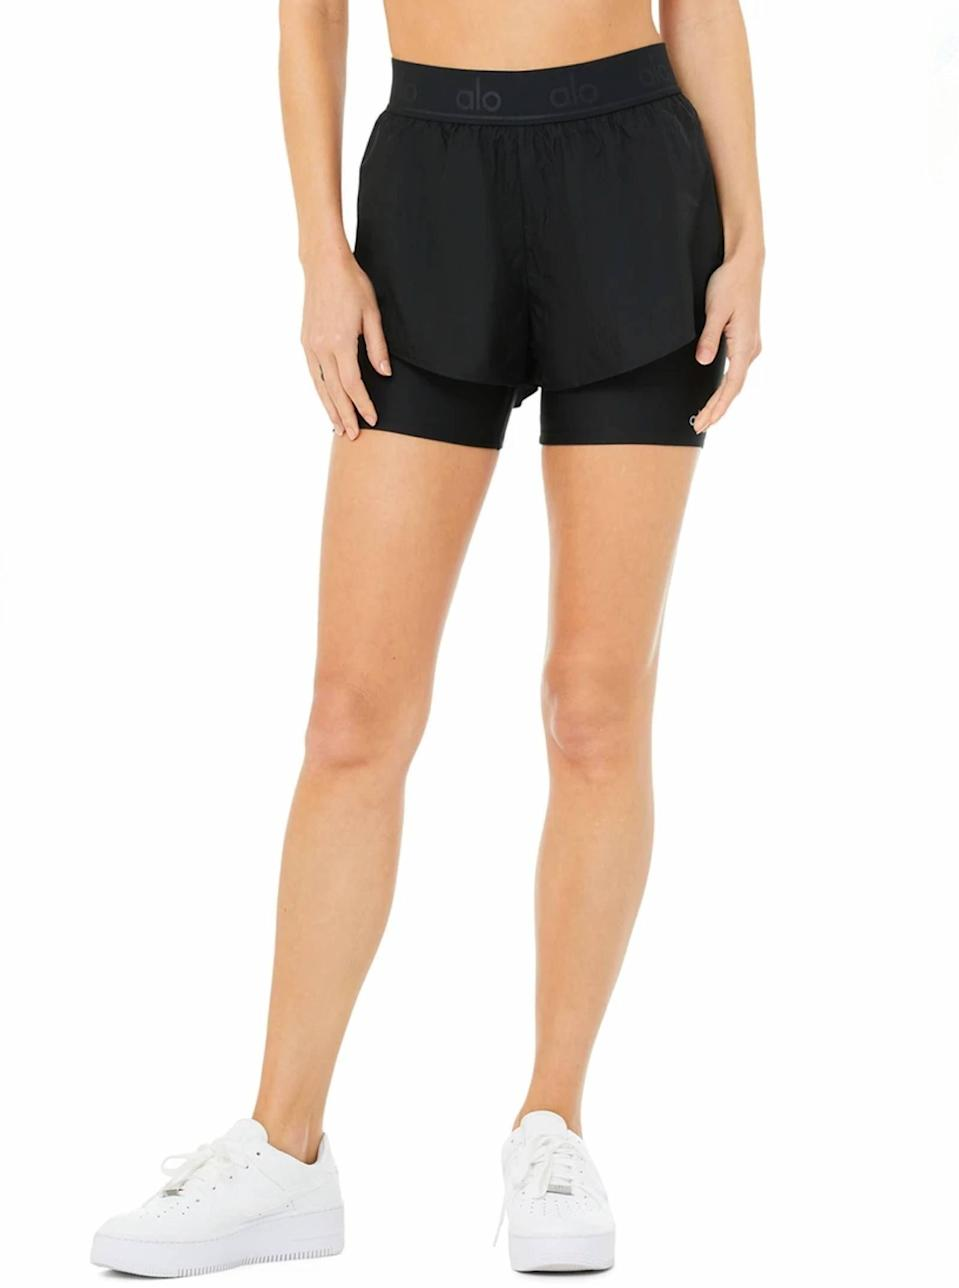 """""""Whoever invented shorts with liners is a genius IMO. These are the perfect hybrid of tiny <a href=""""https://www.glamour.com/story/best-bike-shorts?mbid=synd_yahoo_rss"""" rel=""""nofollow noopener"""" target=""""_blank"""" data-ylk=""""slk:bike short tights"""" class=""""link rapid-noclick-resp"""">bike short tights</a> plus regular run shorts—and the extra coverage means I can get in a post-run stretch without having to worry about flashing passersby. But the best part about these shorts is that the liners don't run up. Nothing's worse than having to adjust down-there every five steps."""" —<em>Talia Abbas, associate commerce editor</em> $72, Alo Yoga. <a href=""""https://www.aloyoga.com/products/w6207r-high-waist-catch-the-light-short-black"""" rel=""""nofollow noopener"""" target=""""_blank"""" data-ylk=""""slk:Get it now!"""" class=""""link rapid-noclick-resp"""">Get it now!</a>"""